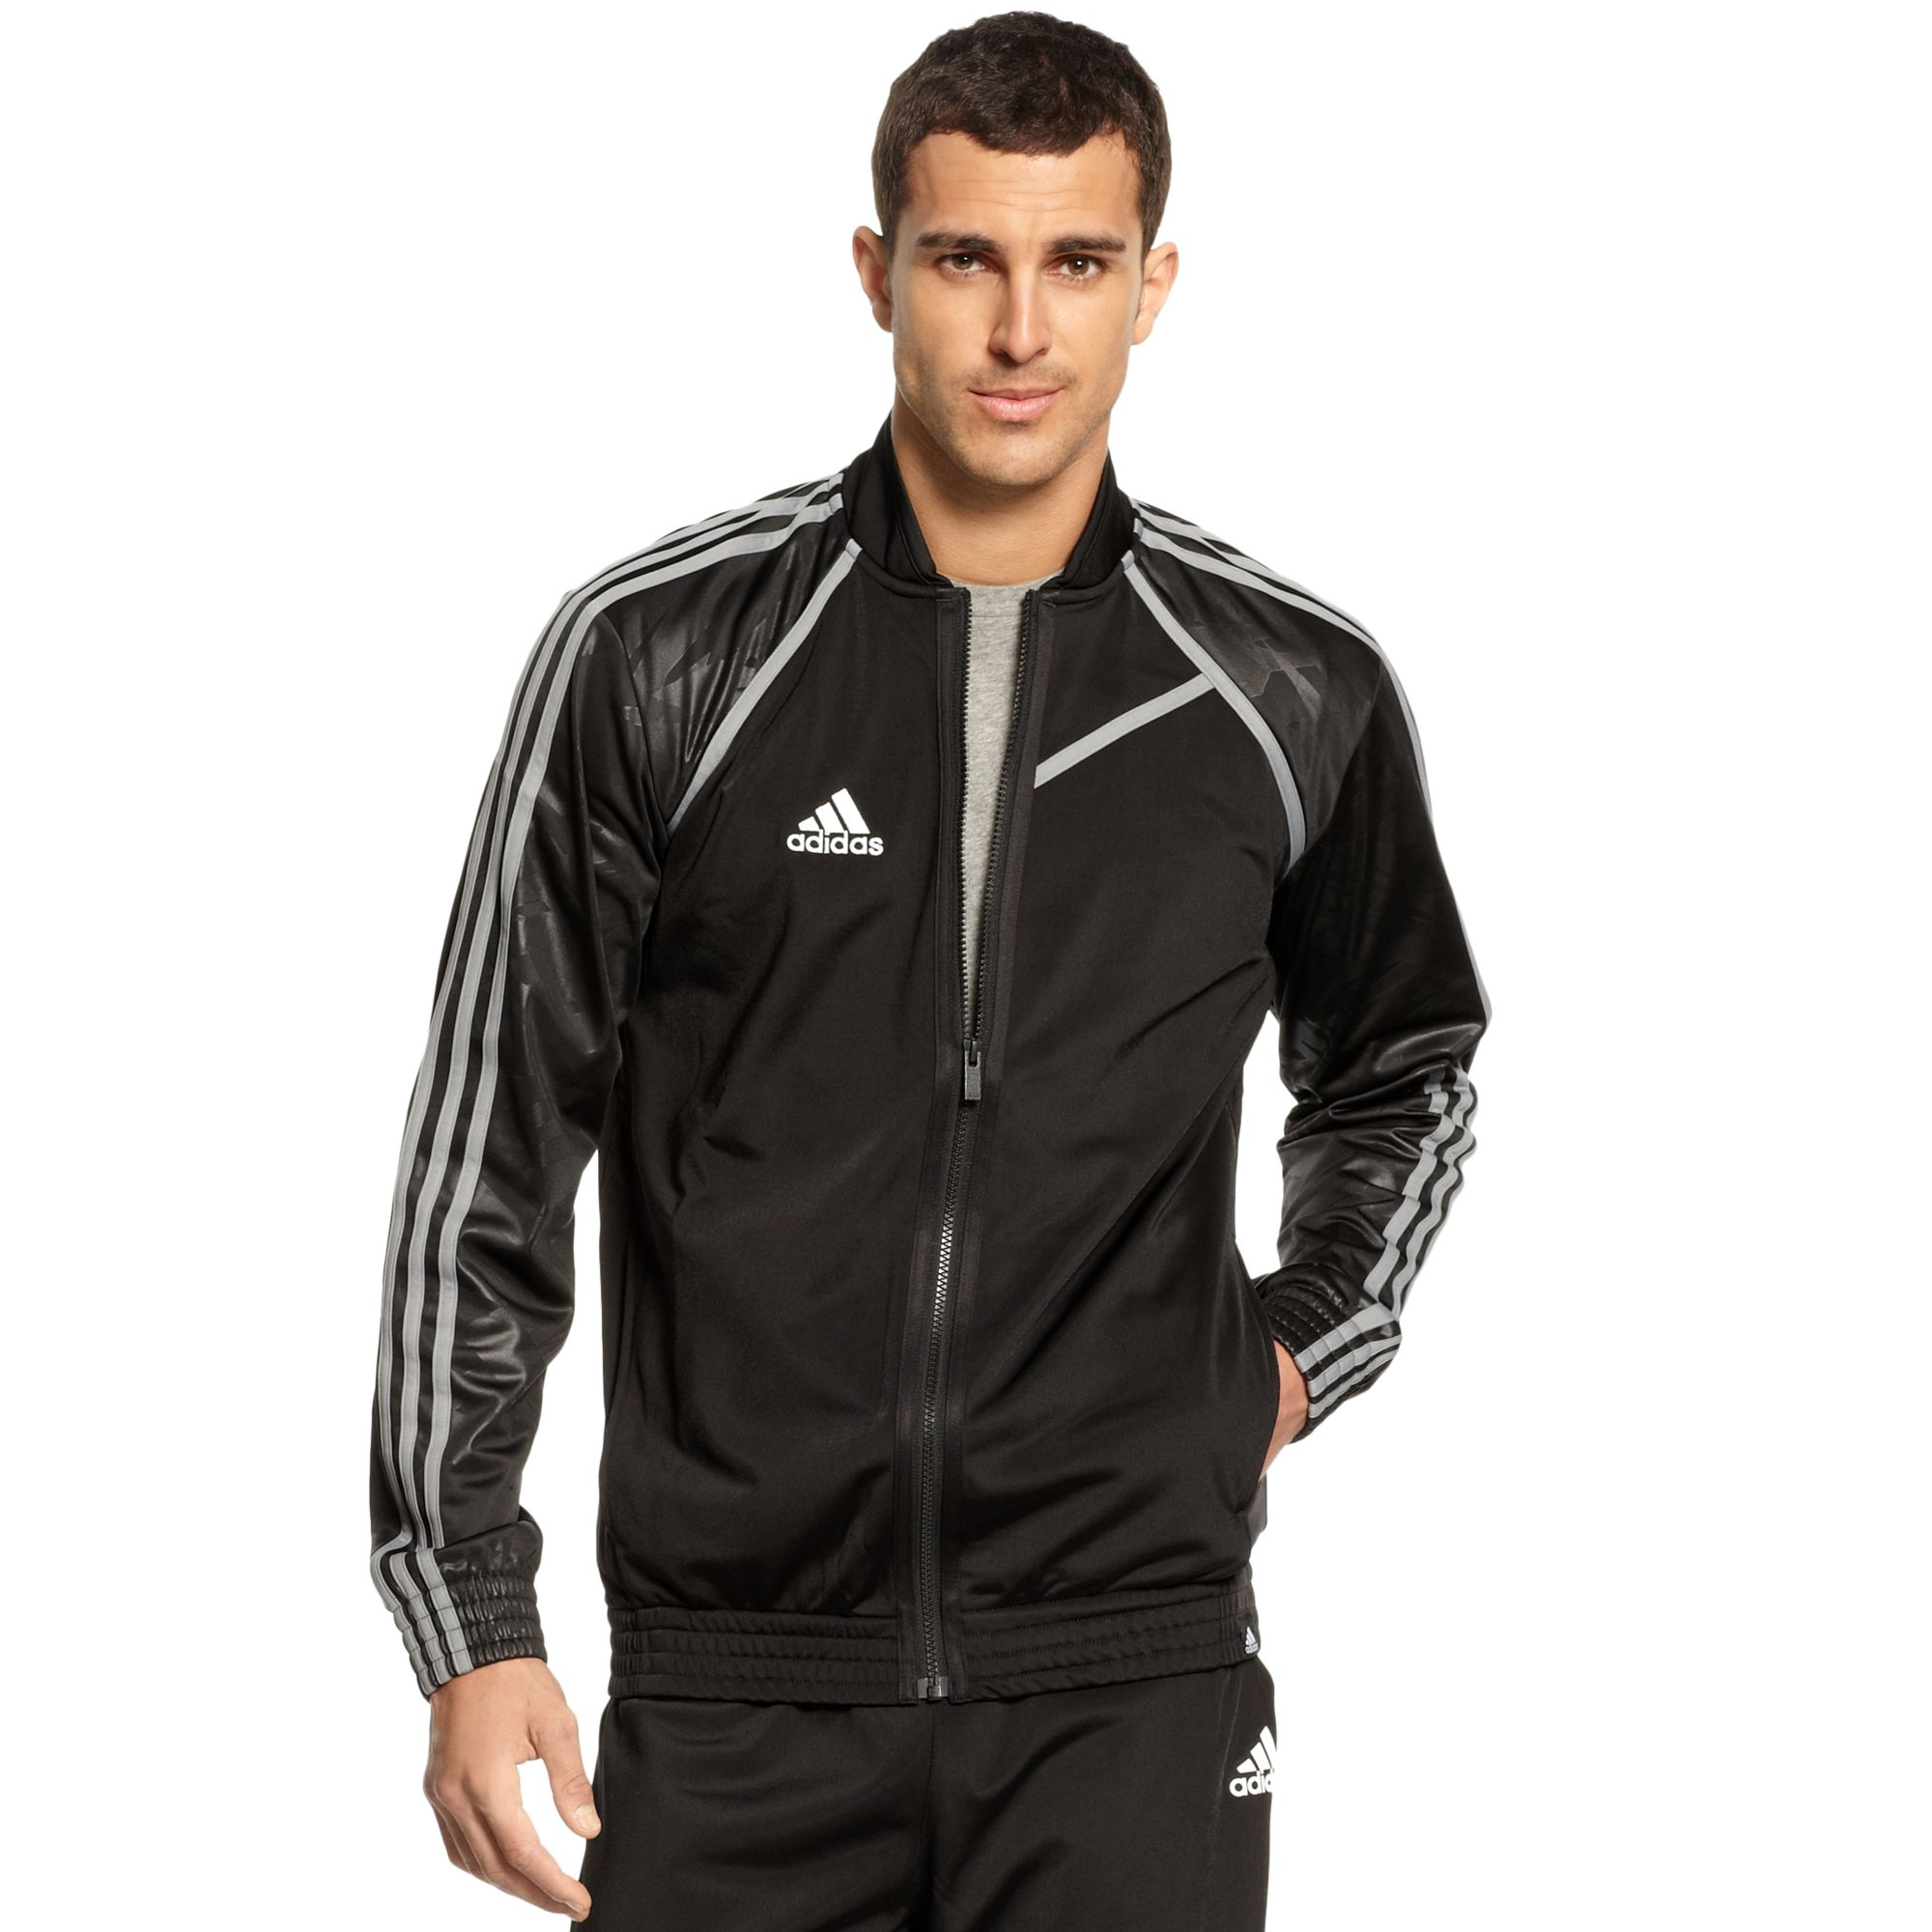 Adidas 3d Camo Basketball Jacket In Black For Men | Lyst